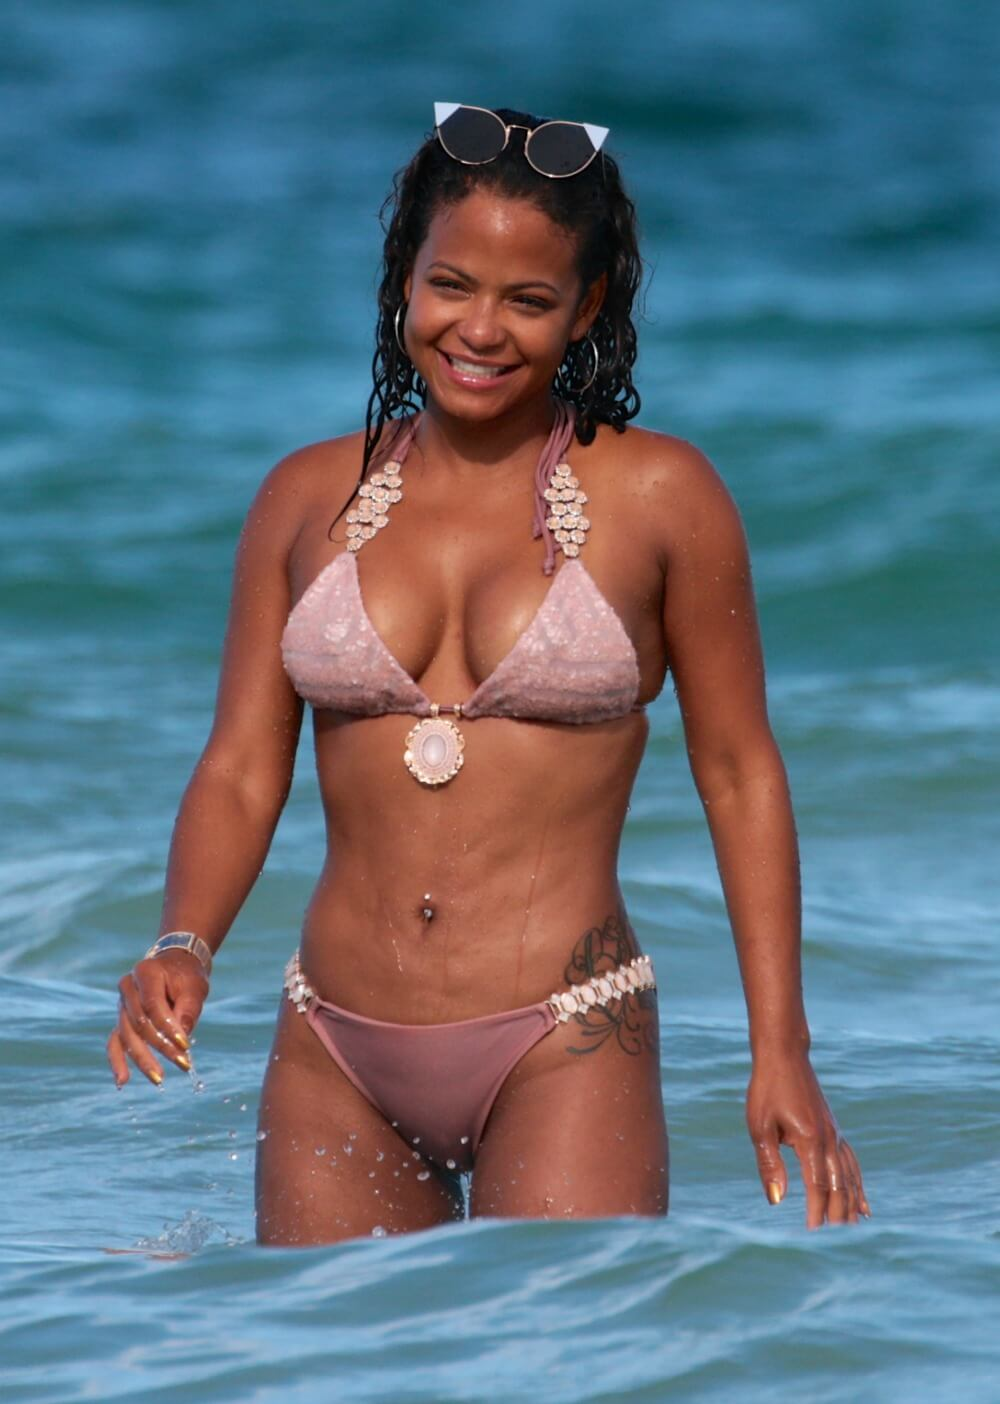 CHRISTINA MILIAN bikini photo